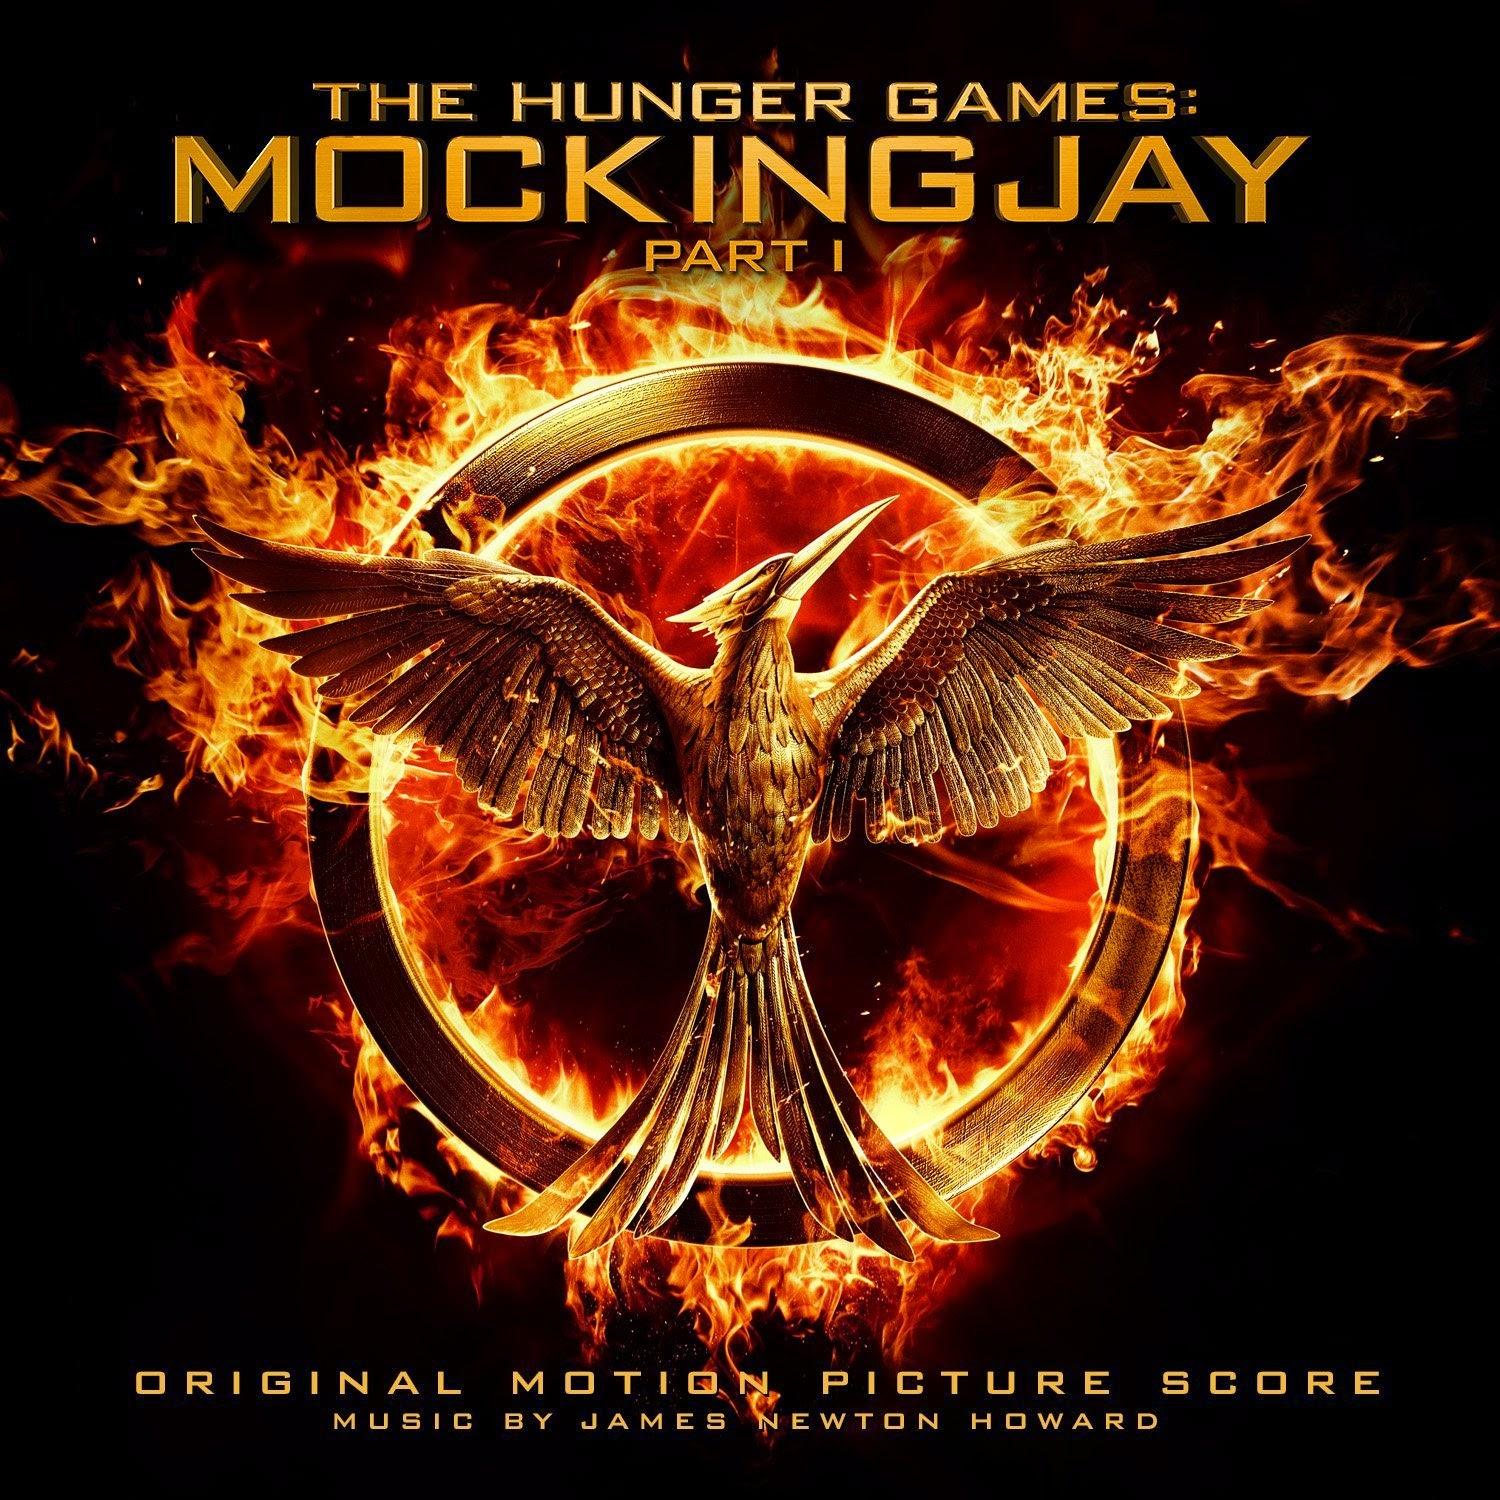 hunger games mockingjay part 1 original motion picture score james newton howard download link the hanging tree jennifer lawrence